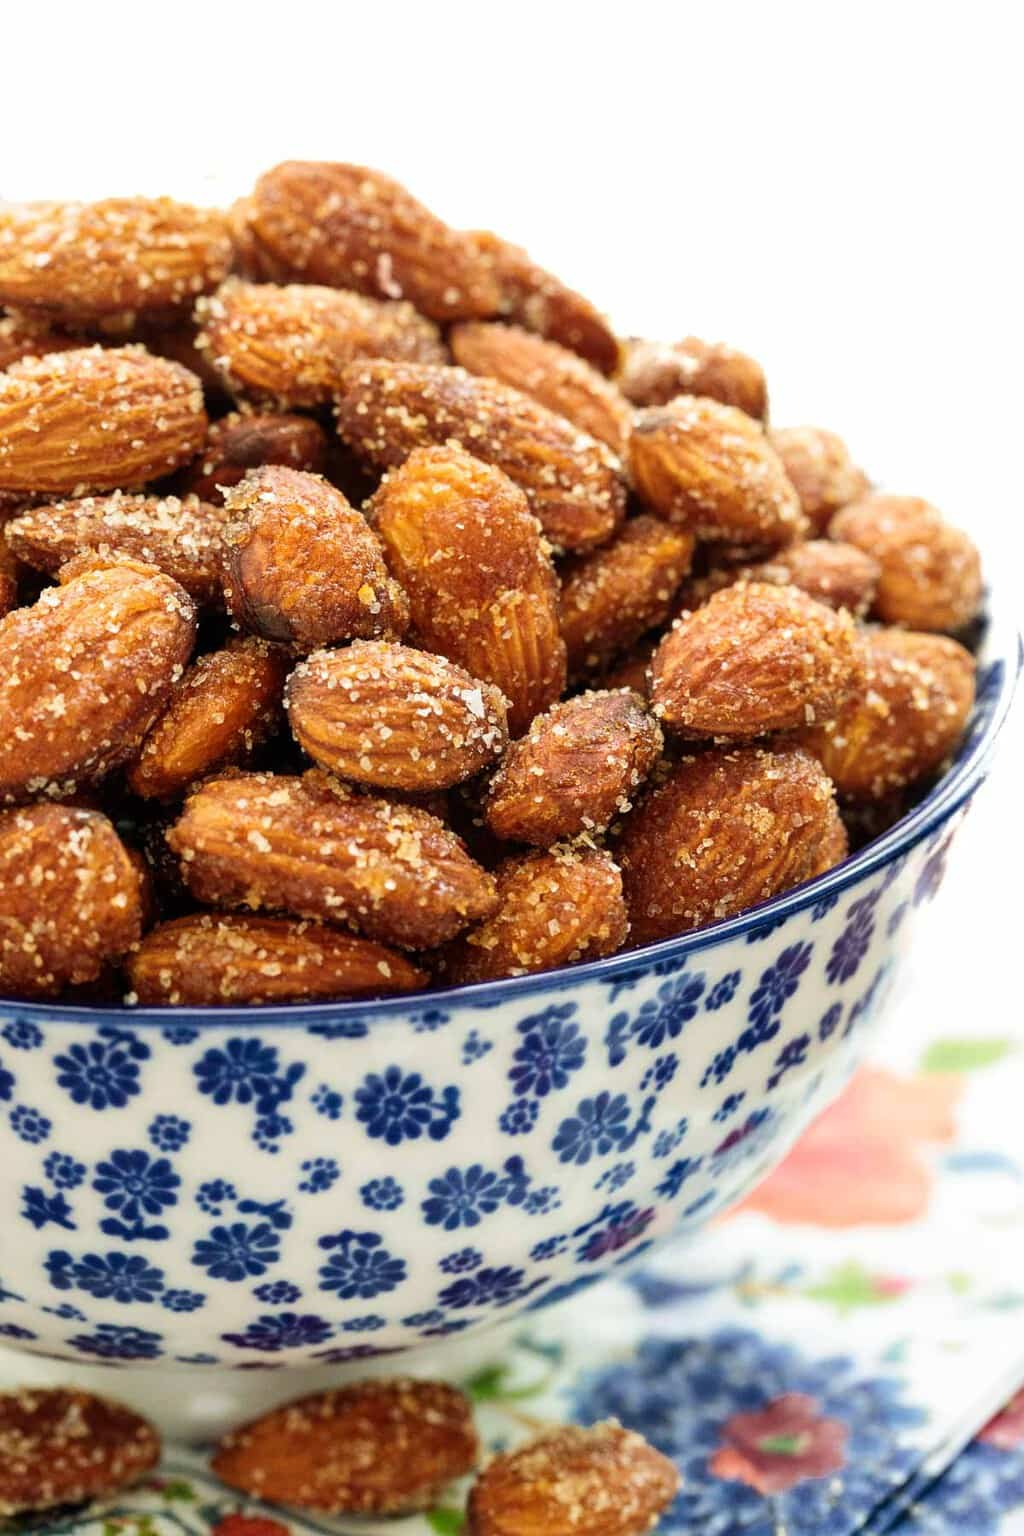 Closeup of a blue and white patterned bowl filled with Sweet and Spicy Roasted Almonds on a colorful patterned napkin.